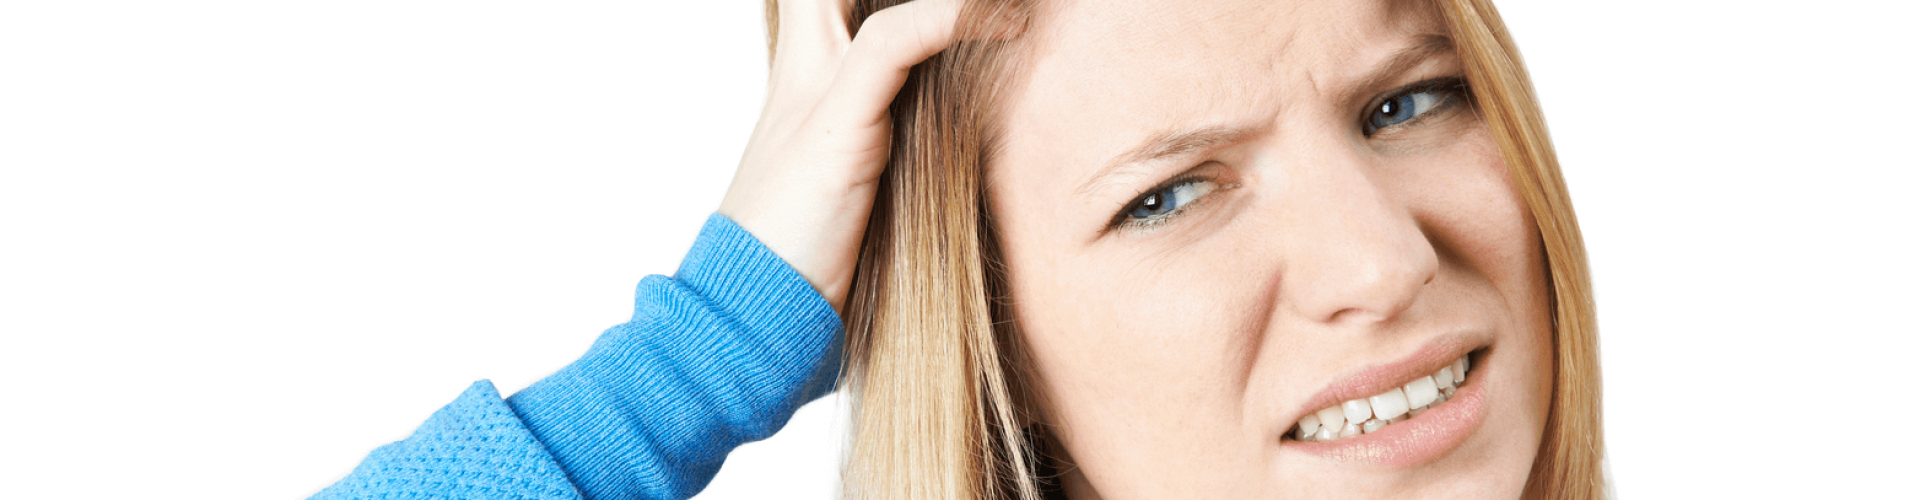 woman itching head lice